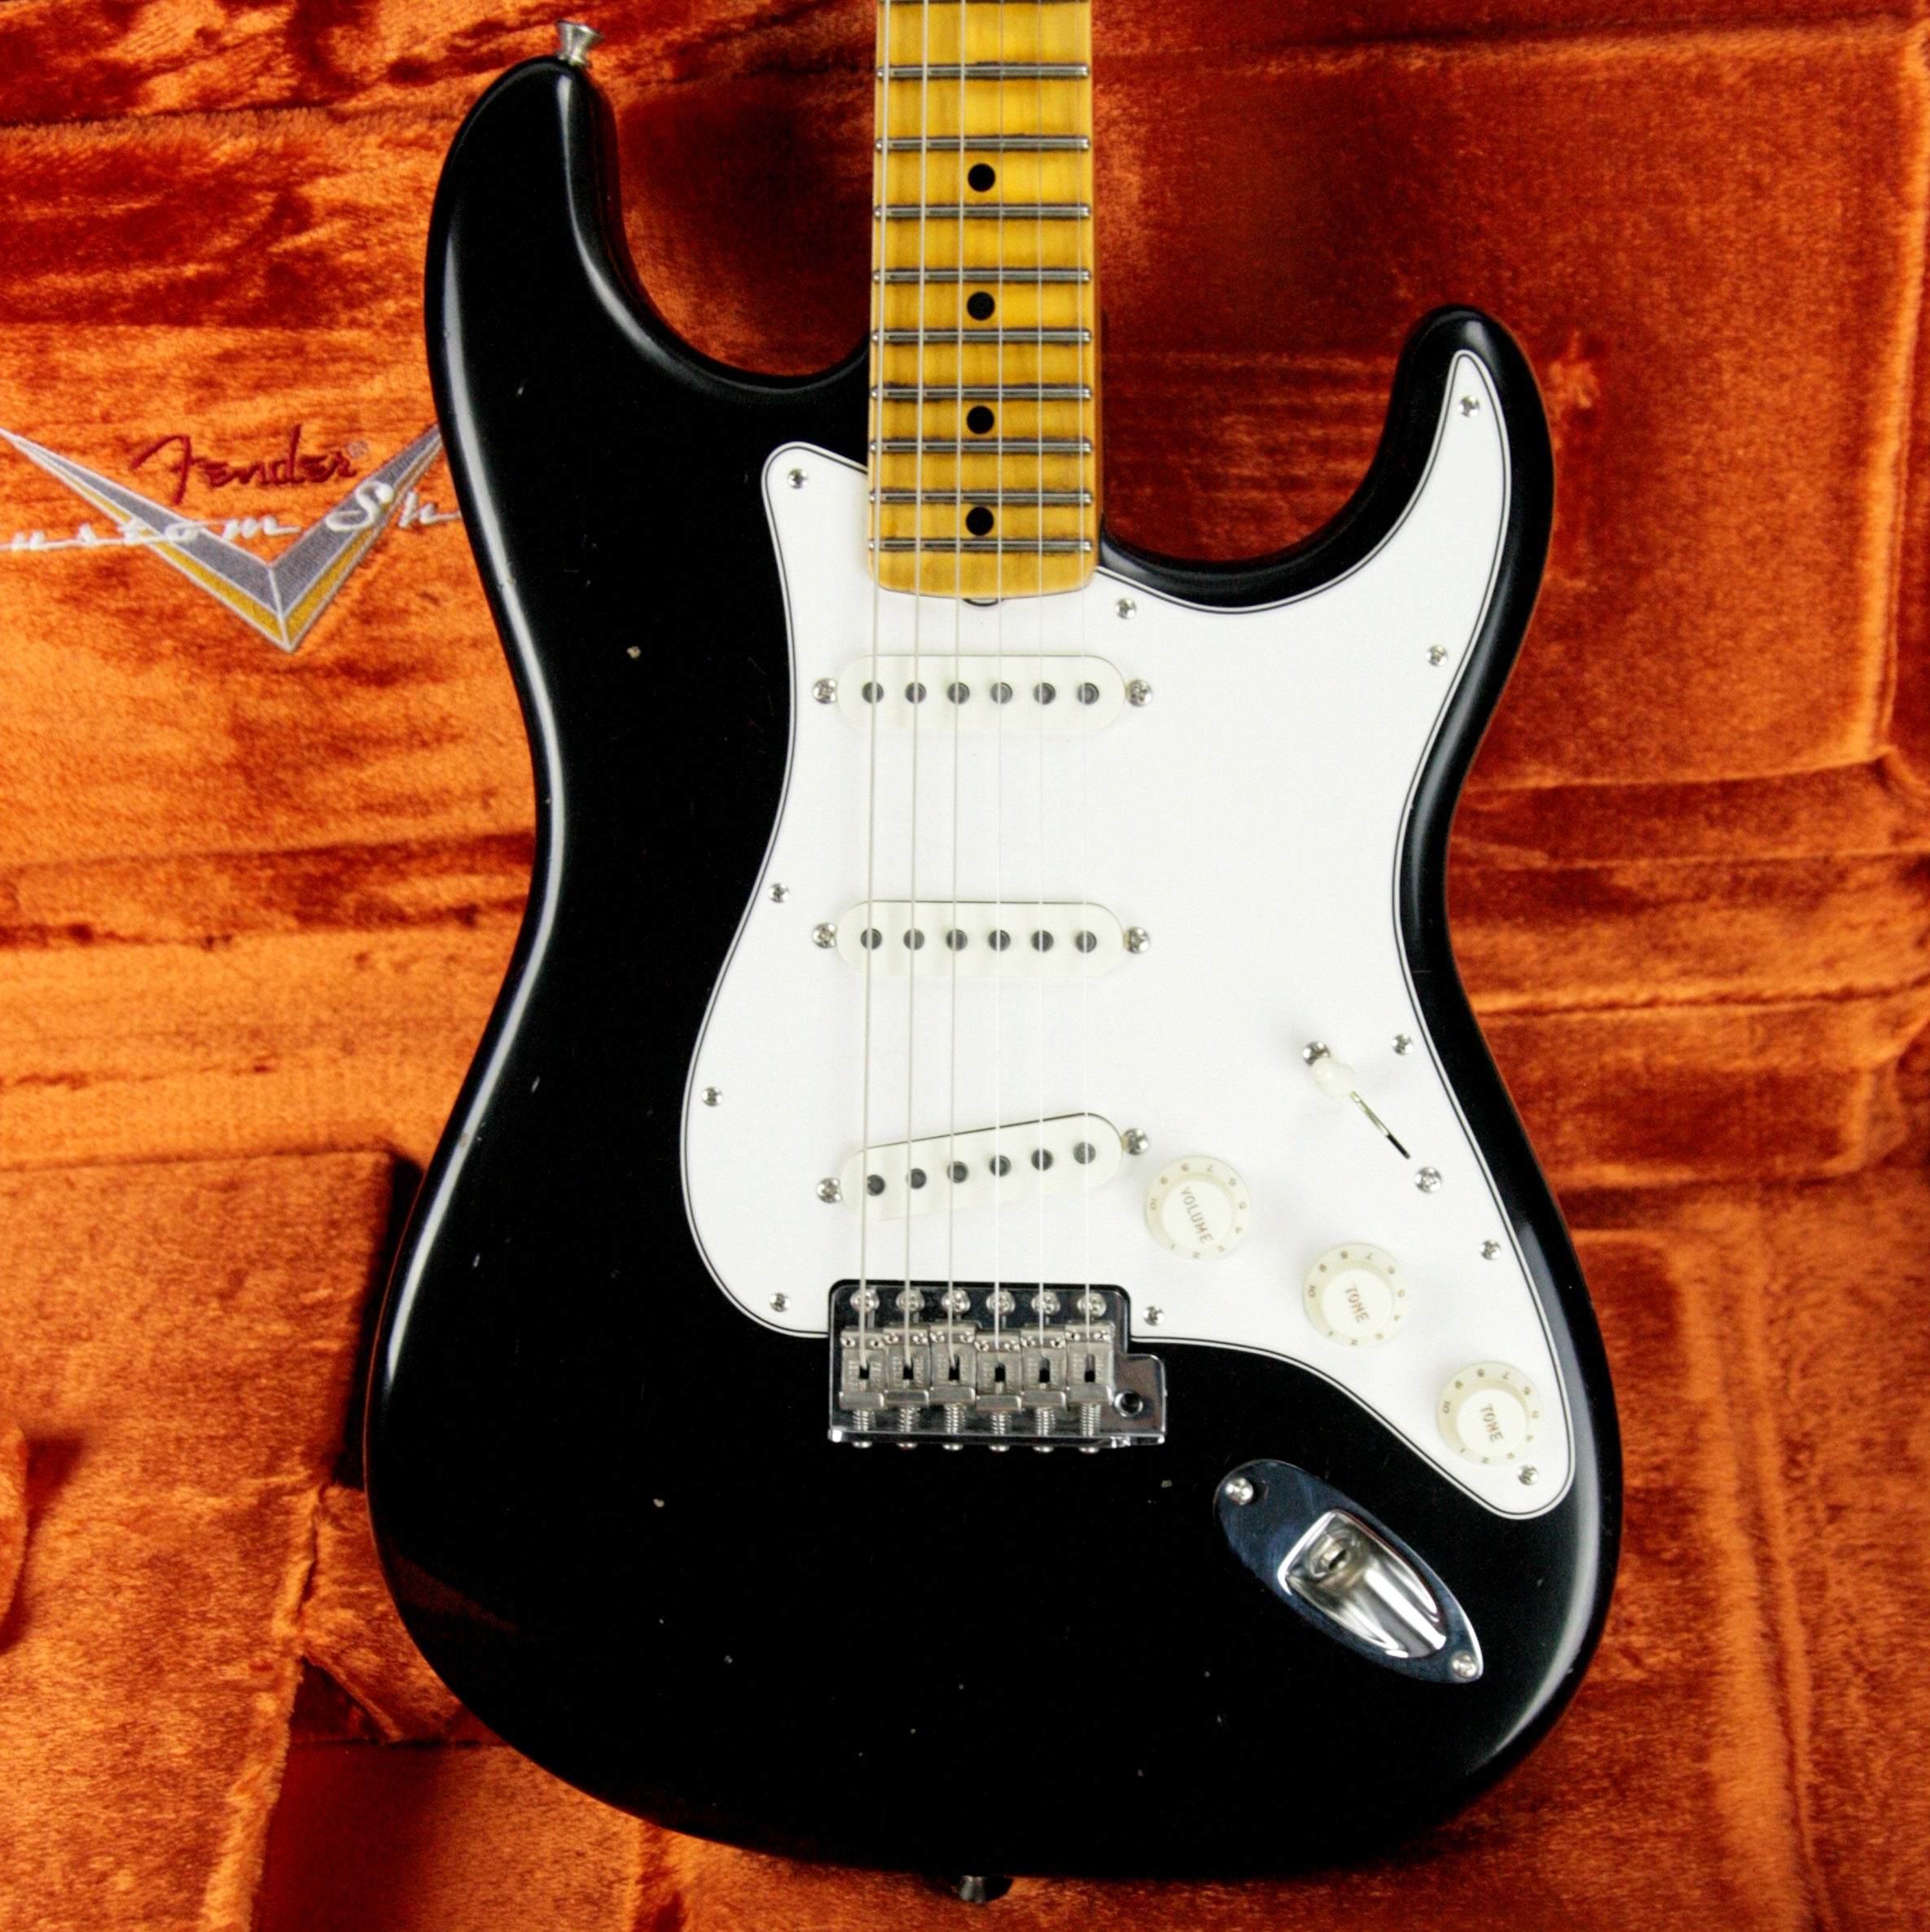 2018 Fender Custom Shop Jimi Hendrix Voodoo Child Stratocaster Journeyman Relic Black Strat Maple Cap Neck